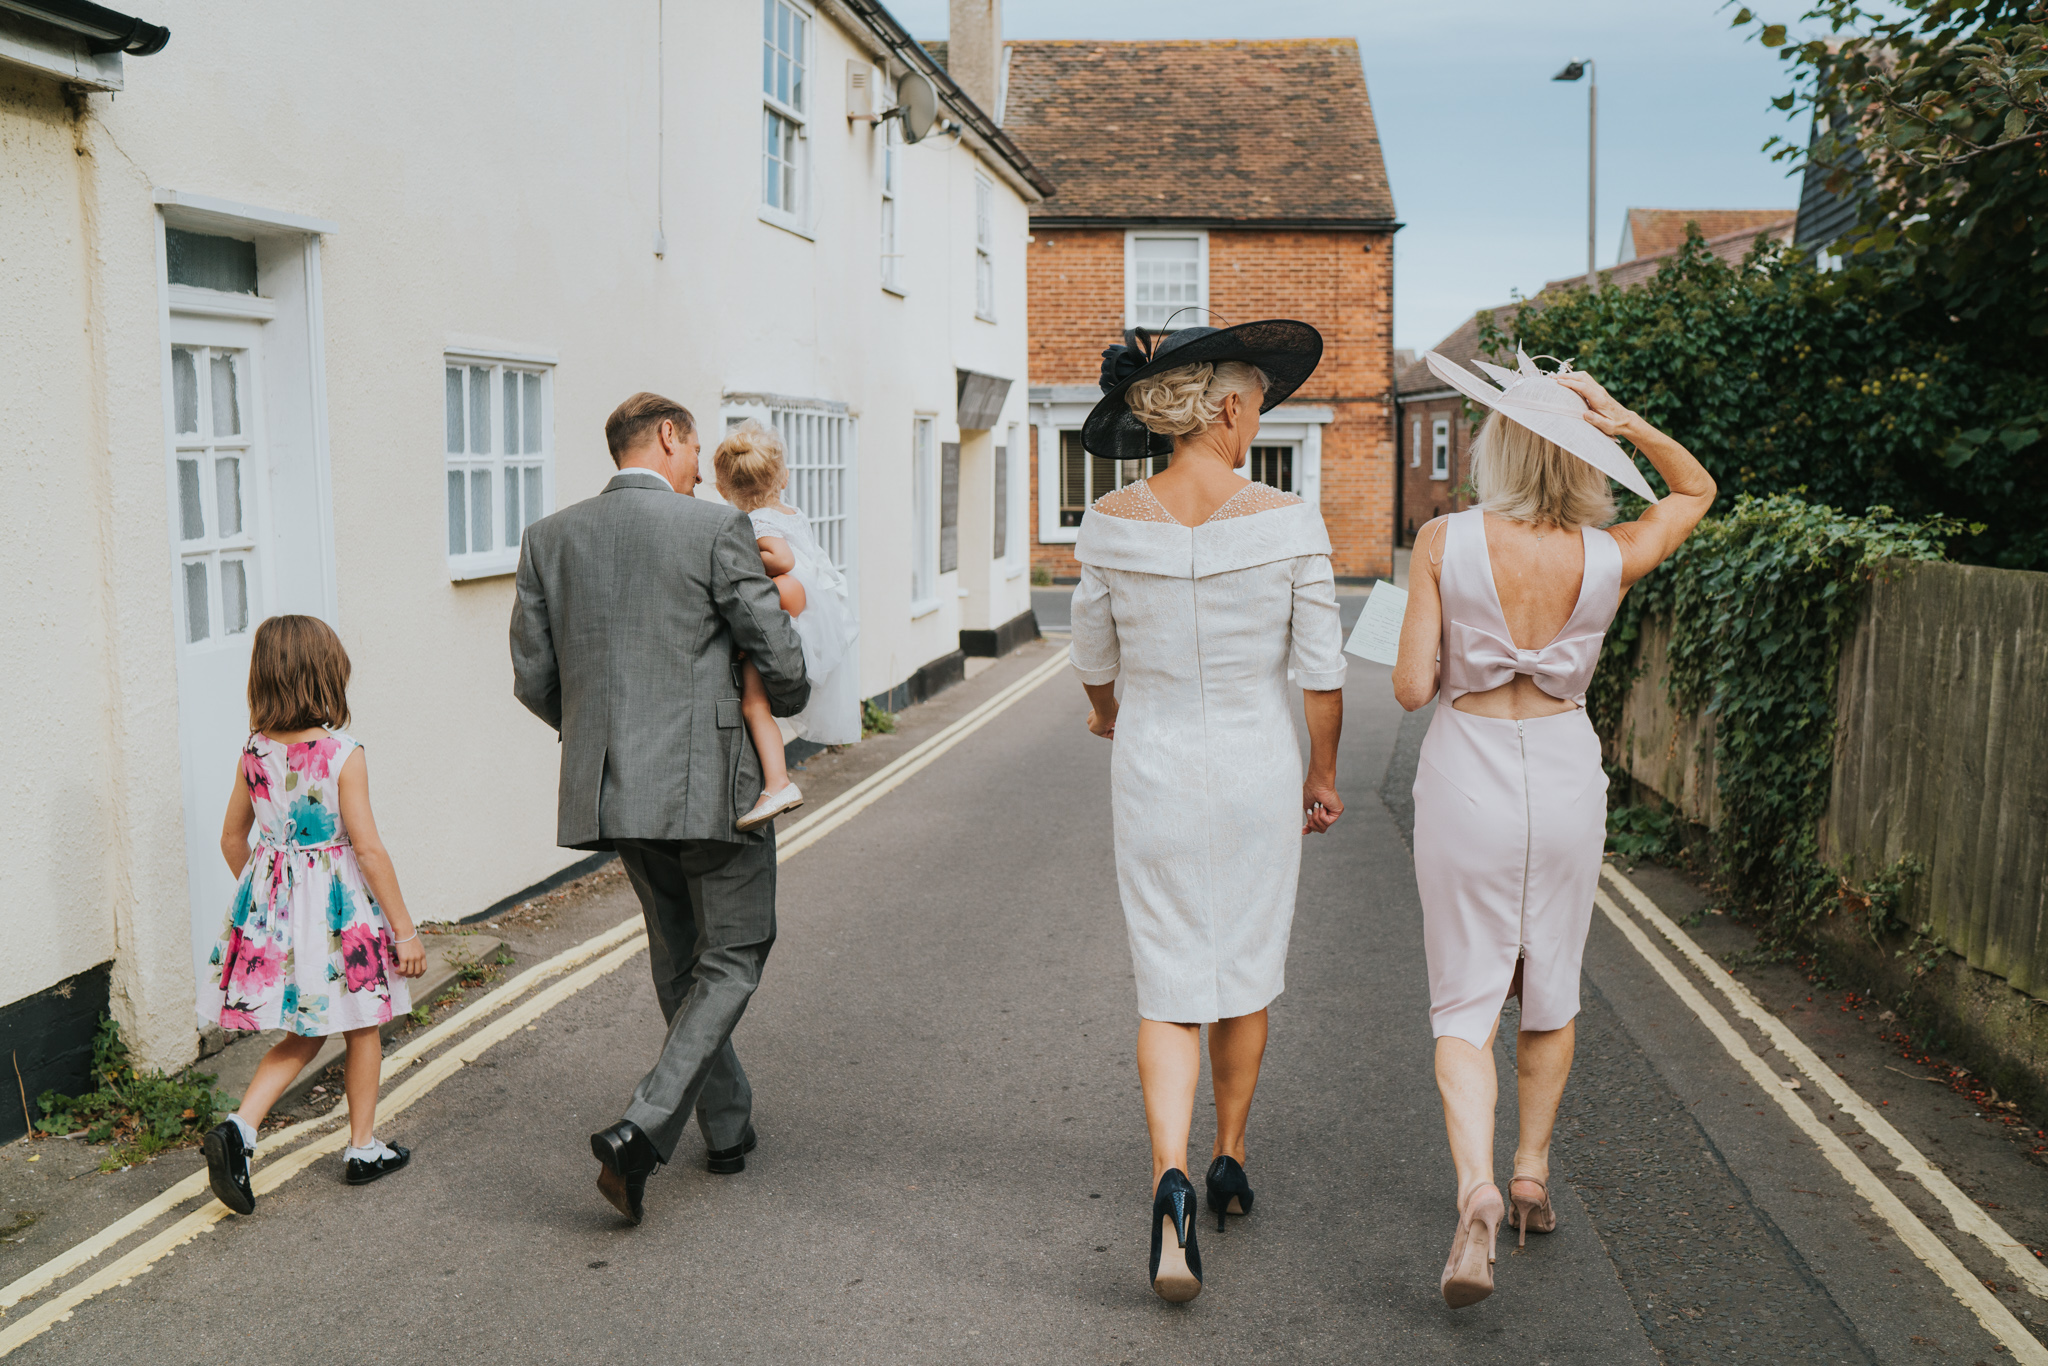 intimate-english-church-wedding-sarah-alex-colchester-essex-grace-elizabeth-colchester-essex-alternative-wedding-lifestyle-photographer-essex-suffolk-norfolk-devon (75 of 92).jpg